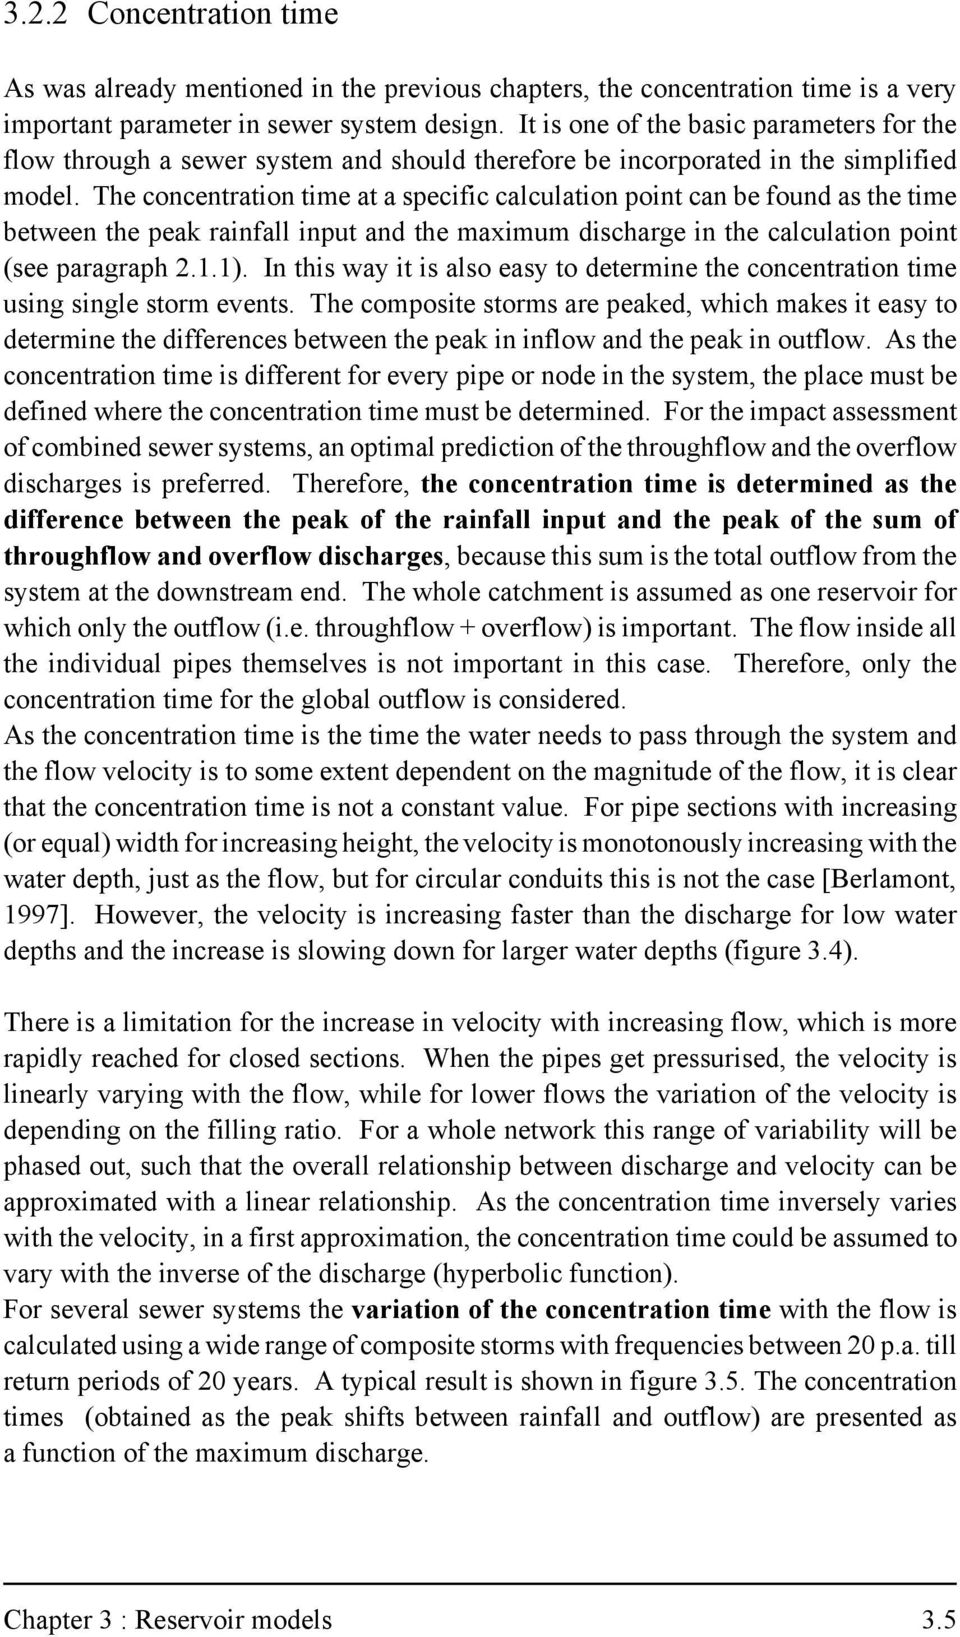 The concentration time at a specific calculation point can be found as the time between the peak rainfall input and the maximum discharge in the calculation point (see paragraph 2.1.1).